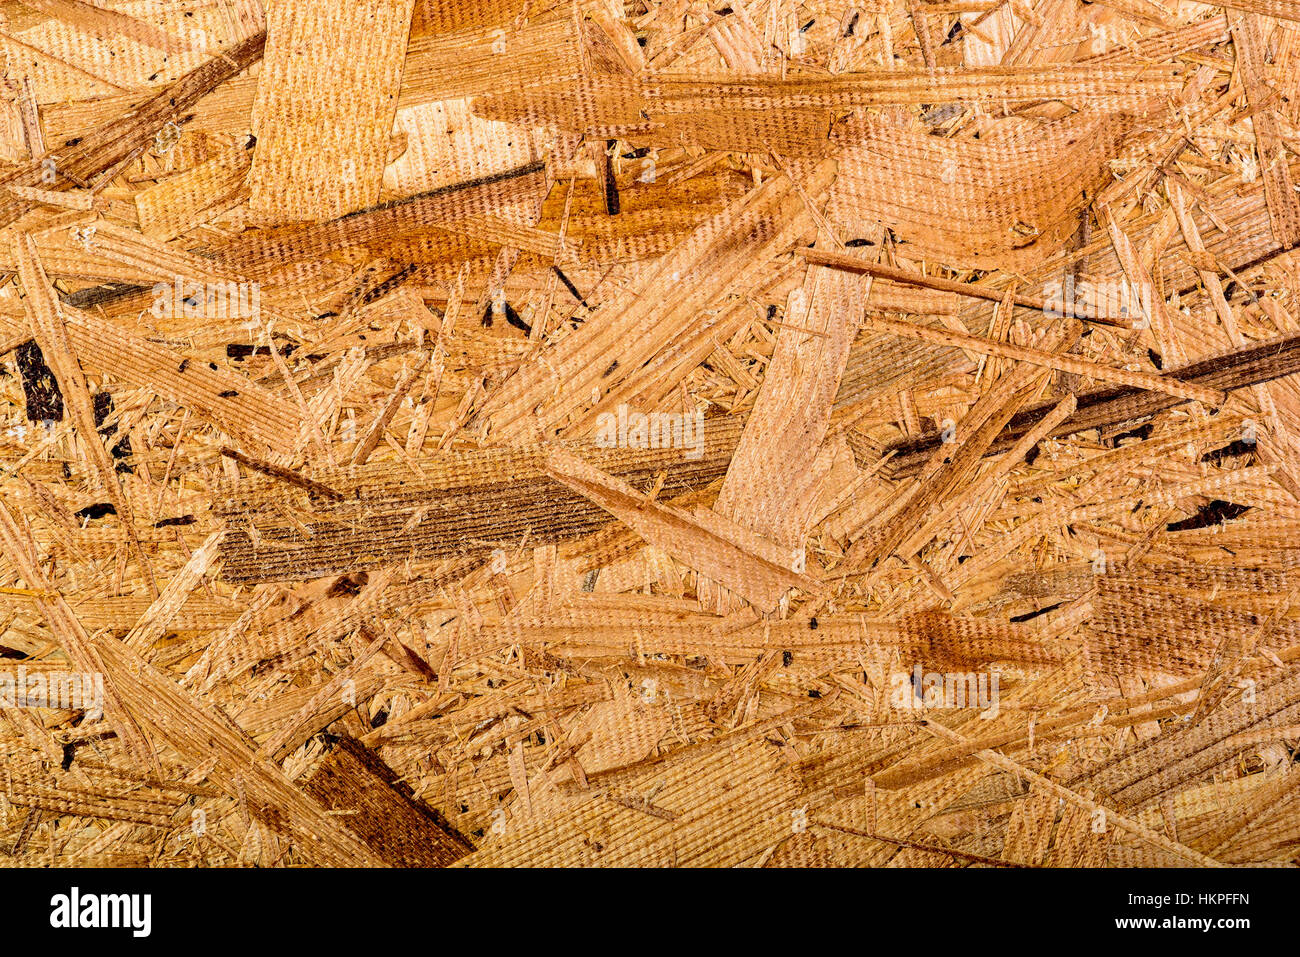 Particle Board Not Mdf Stock Photos & Particle Board Not Mdf